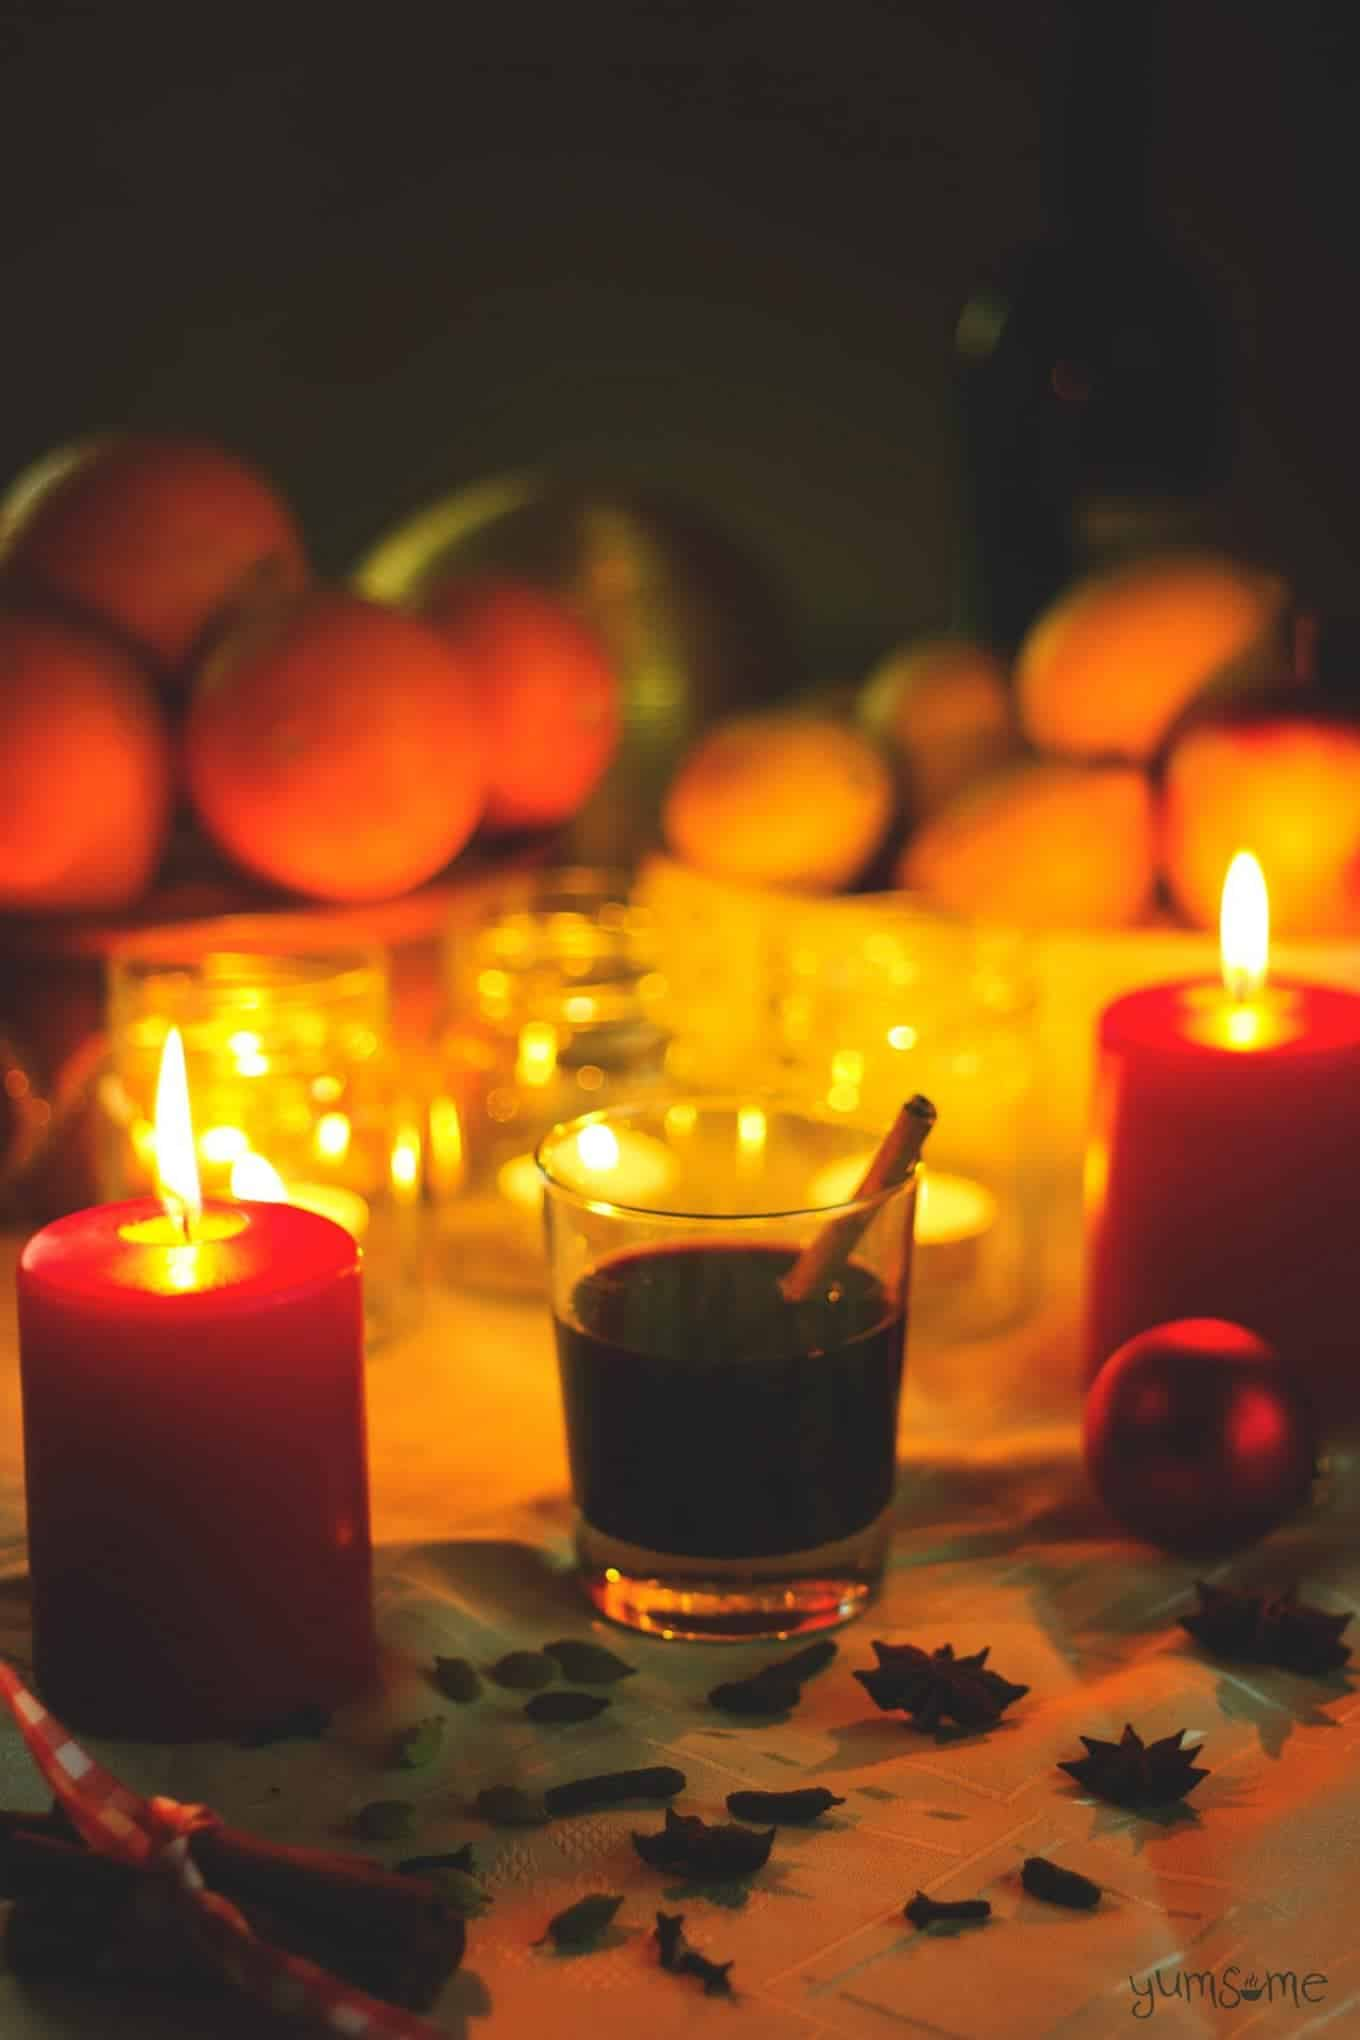 A glass of mulled wine surrounded by candles.